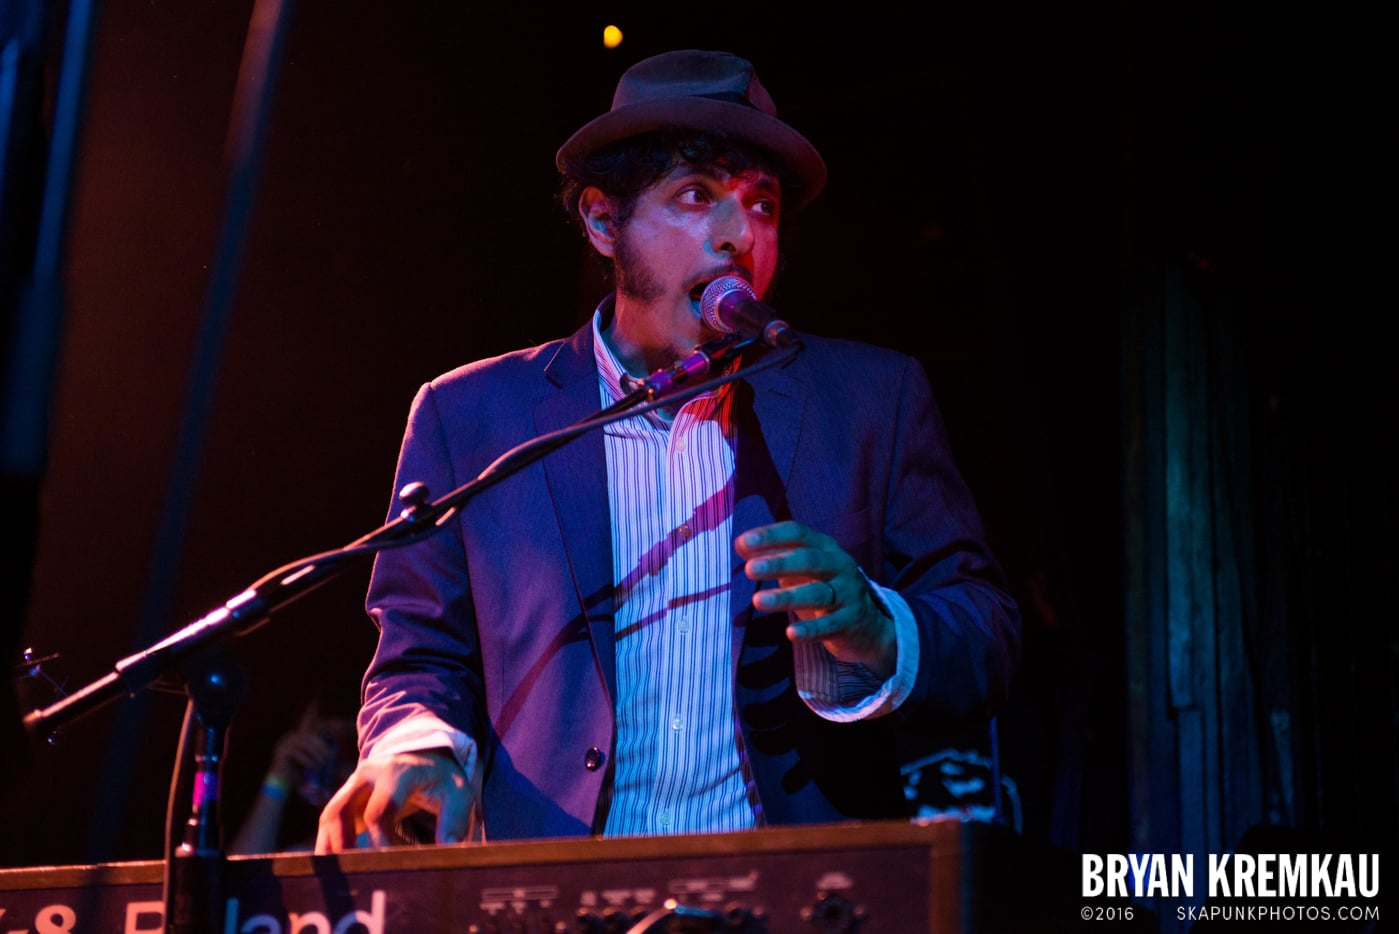 The Slackers @ Apple Stomp: Day 2, Irving Plaza, NYC - June 1st 2013 - Bryan Kremkau (16)